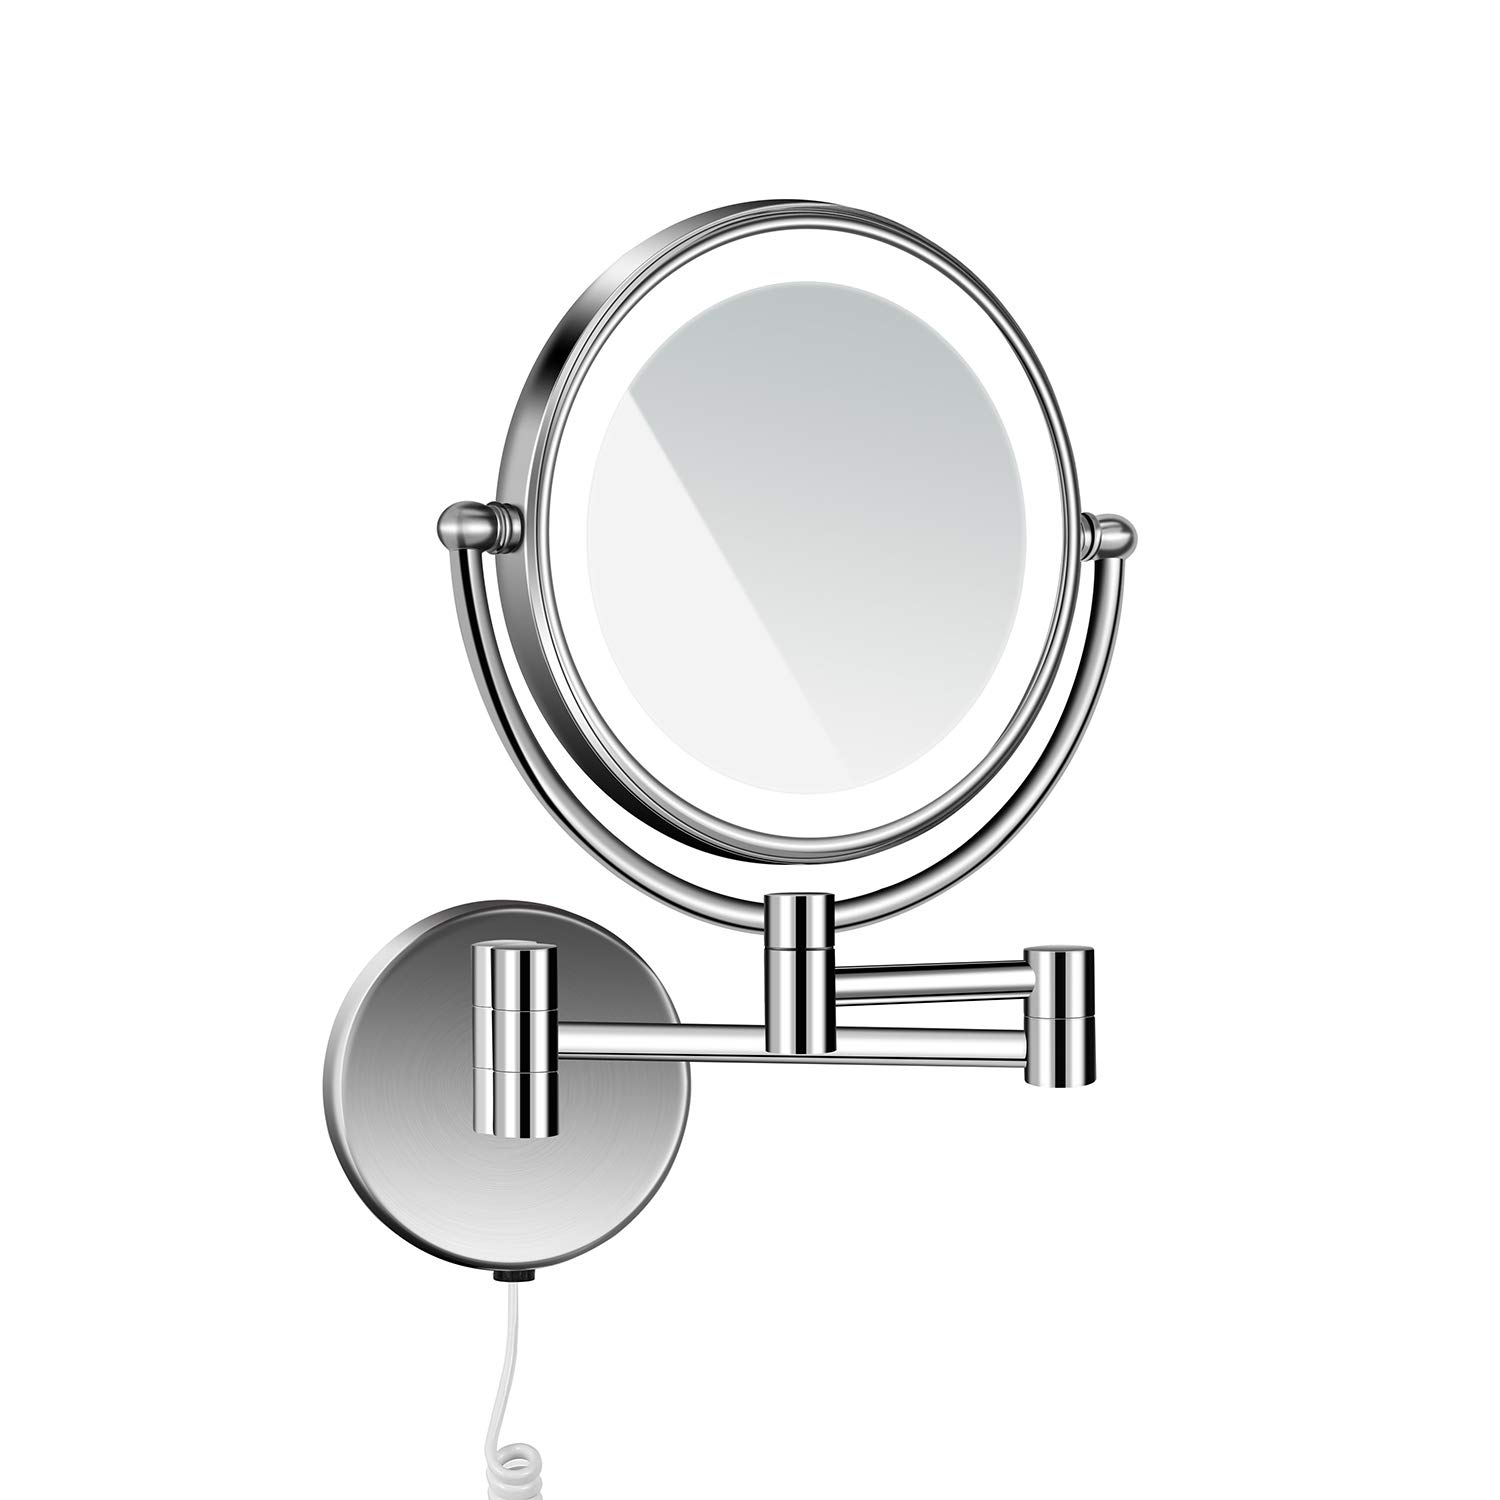 langrun 3X Magnification Body Sensing LED Lighted Dual Sided Wall Mirror, 8Inch Stainless Steel (Nickel Brushed, Lighted) by langrun